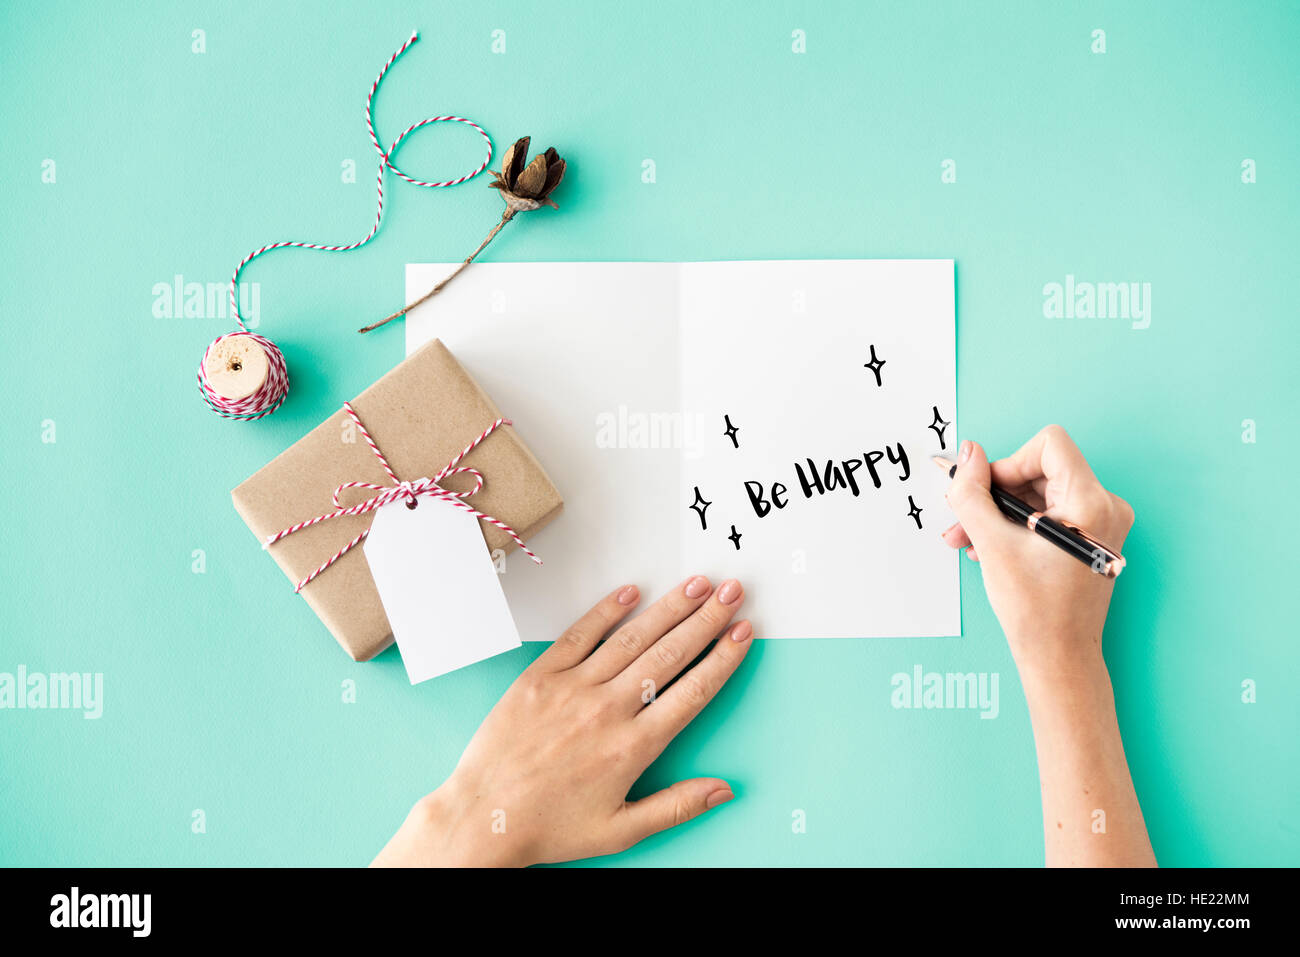 Happy Birthday Always Smile Concept - Stock Image